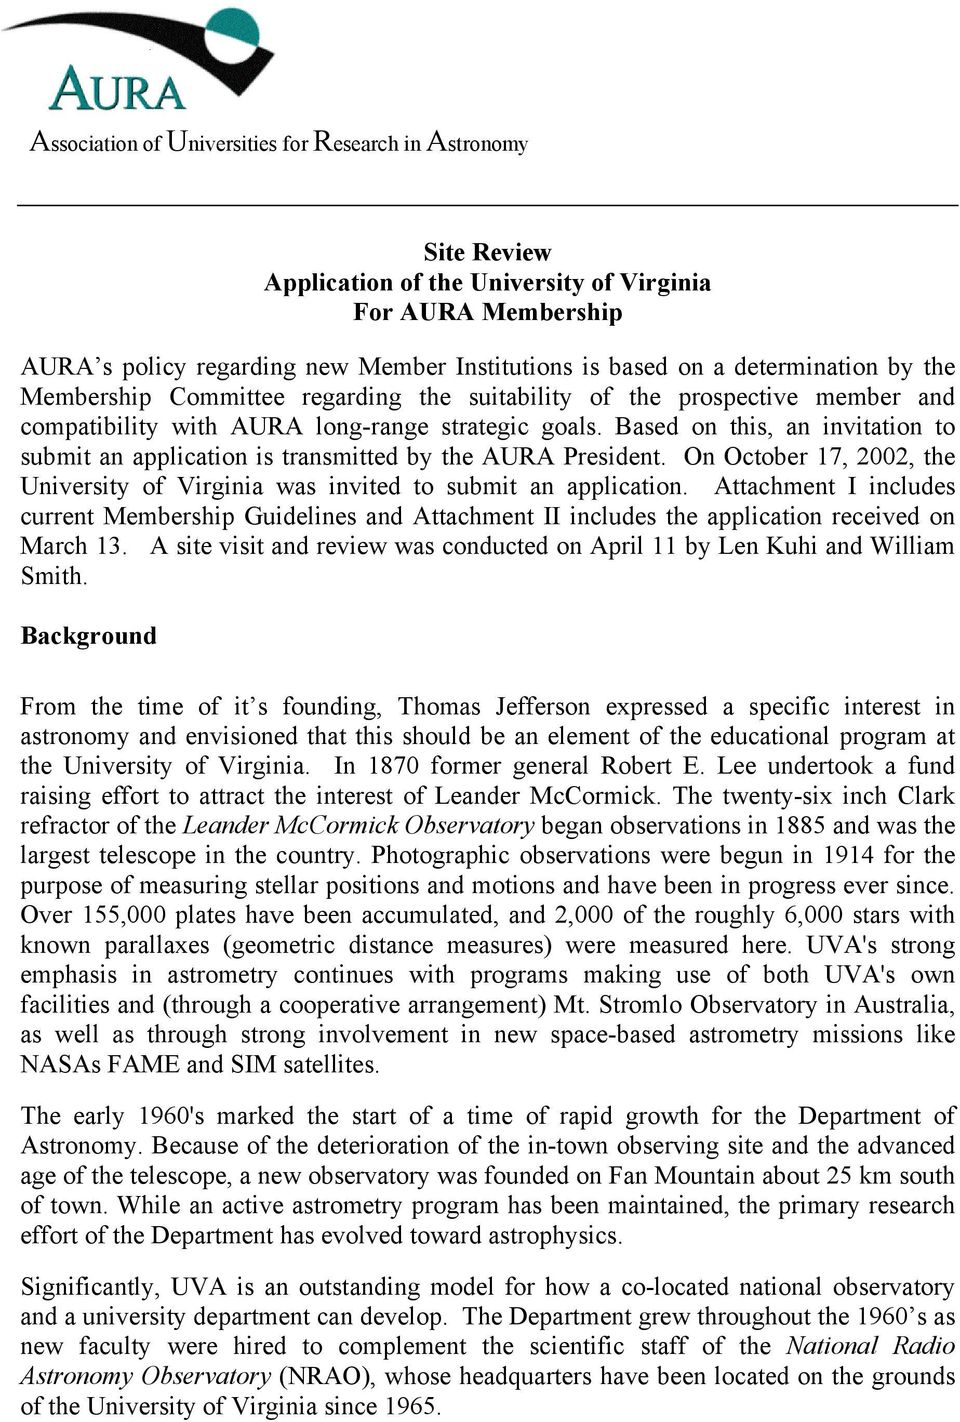 Based on this, an invitation to submit an application is transmitted by the AURA President. On October 17, 2002, the University of Virginia was invited to submit an application.